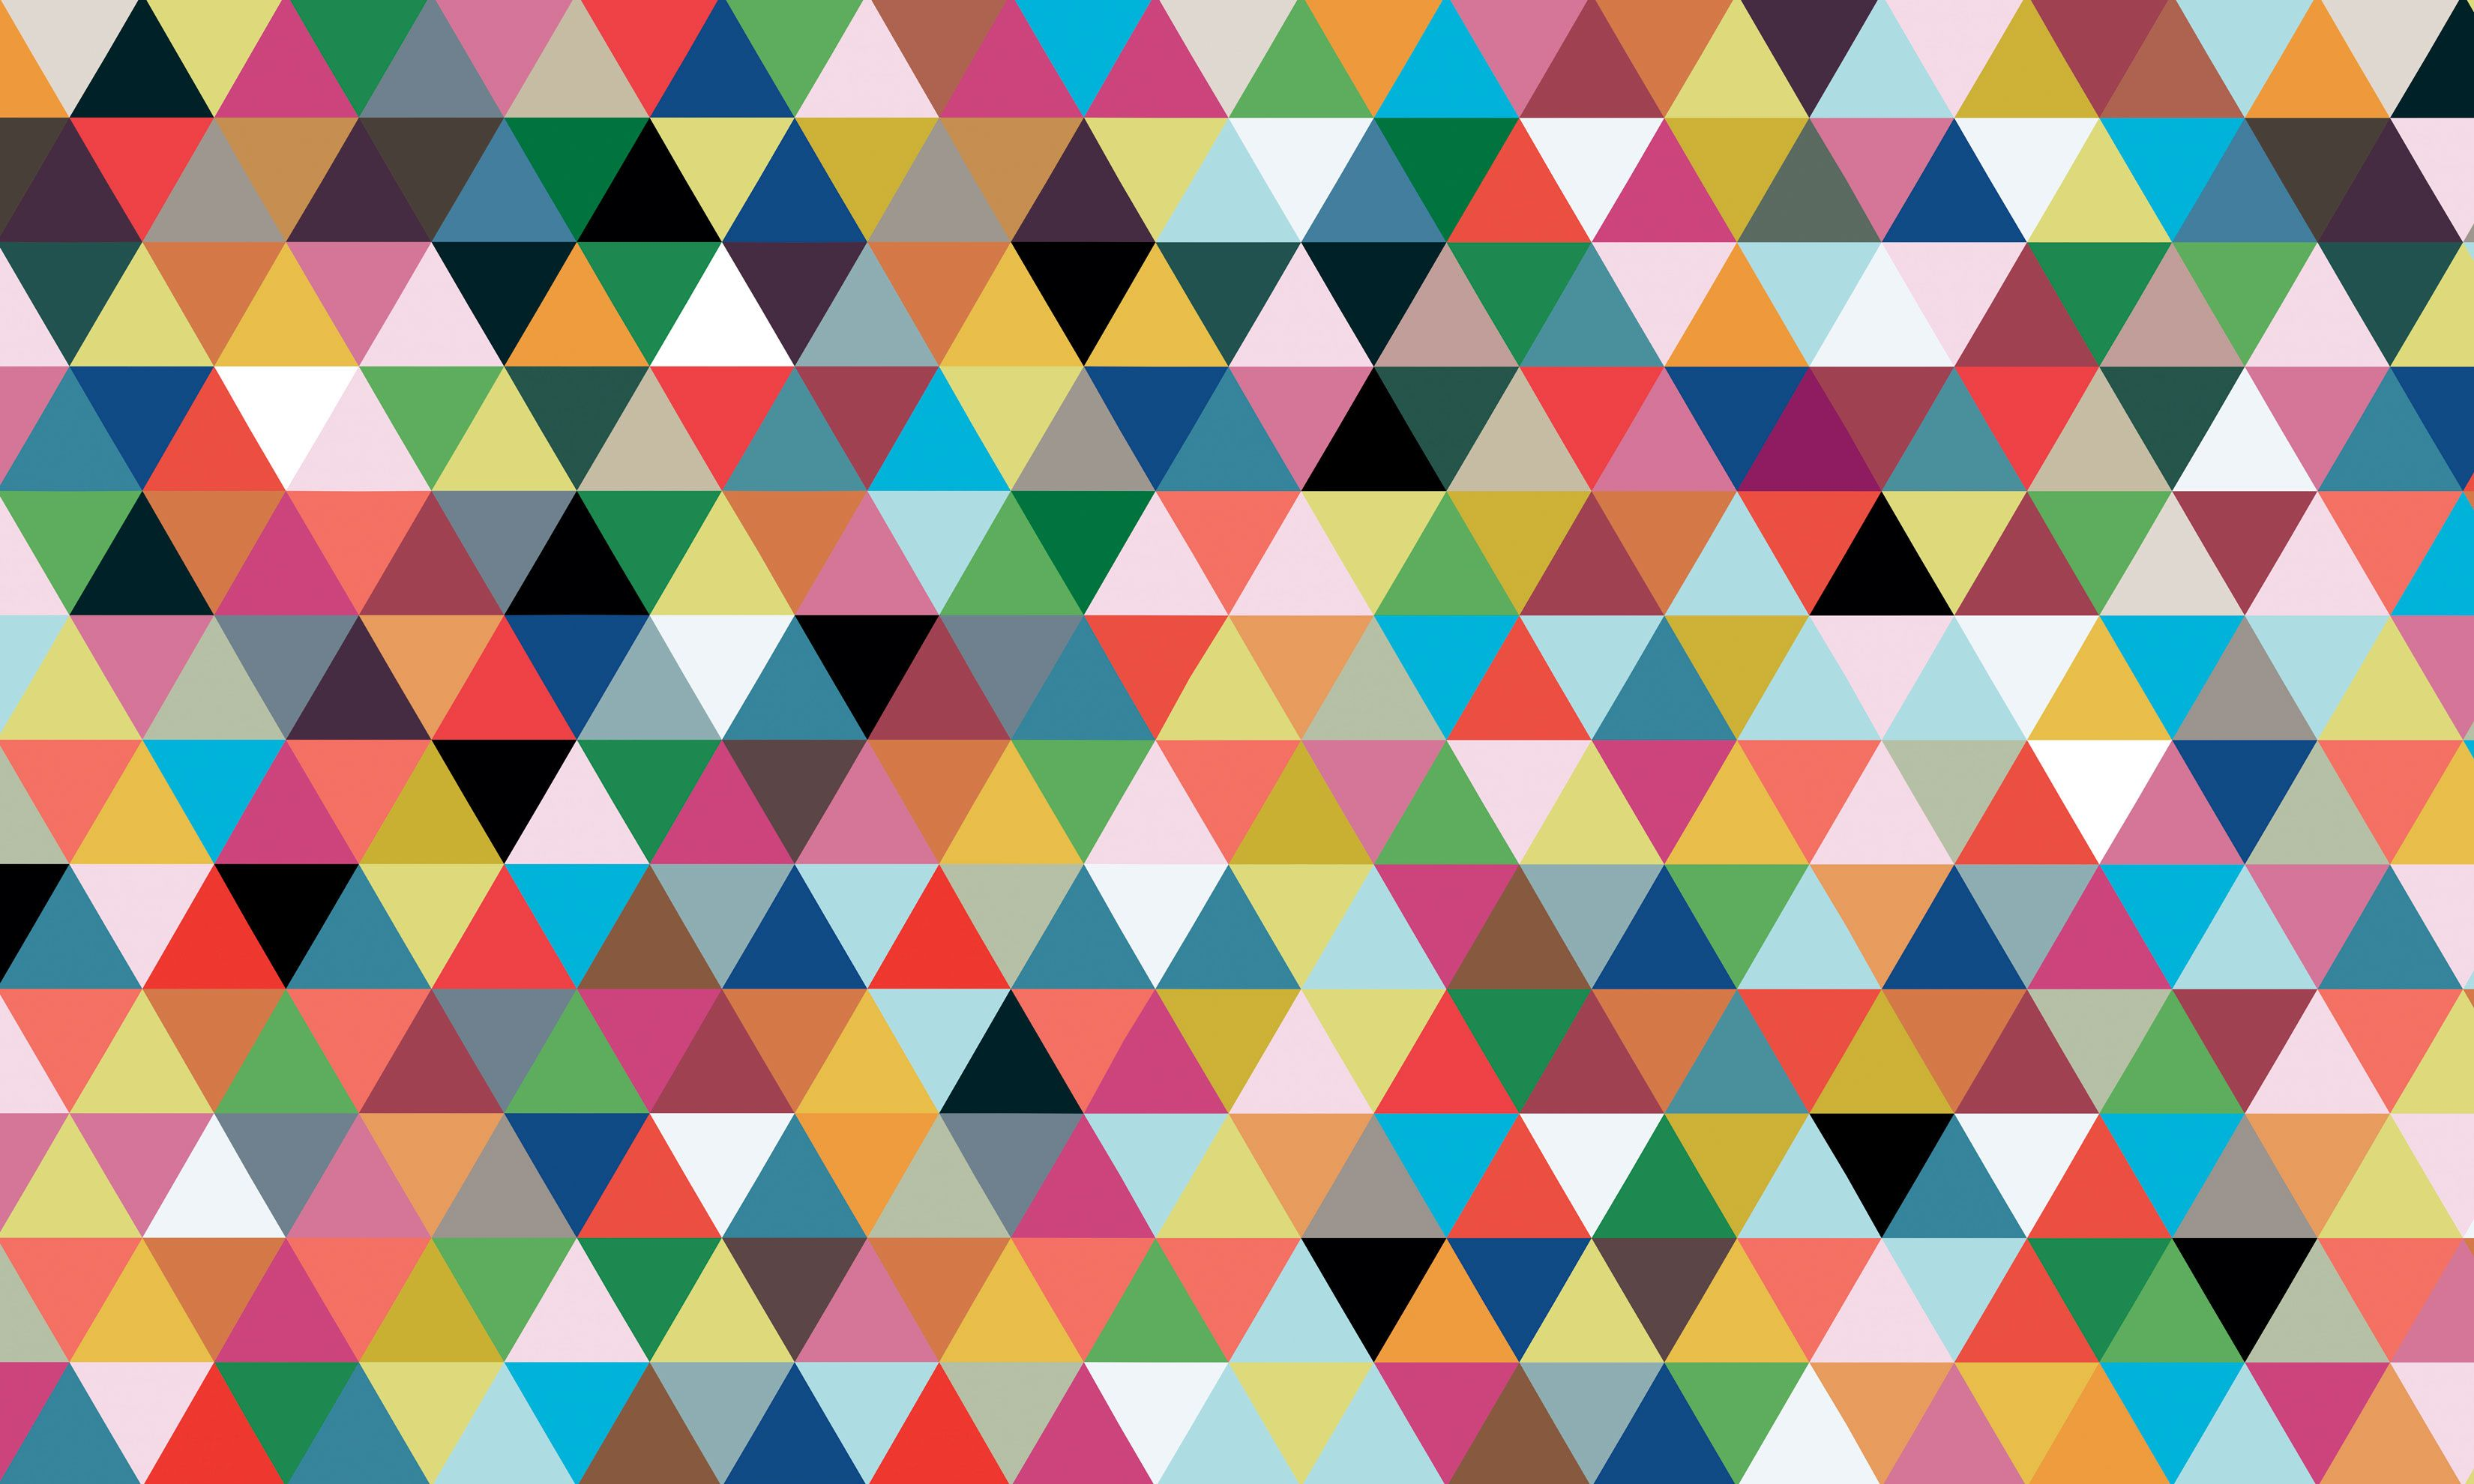 triangle pattern design ! take it for your wallpaper ...